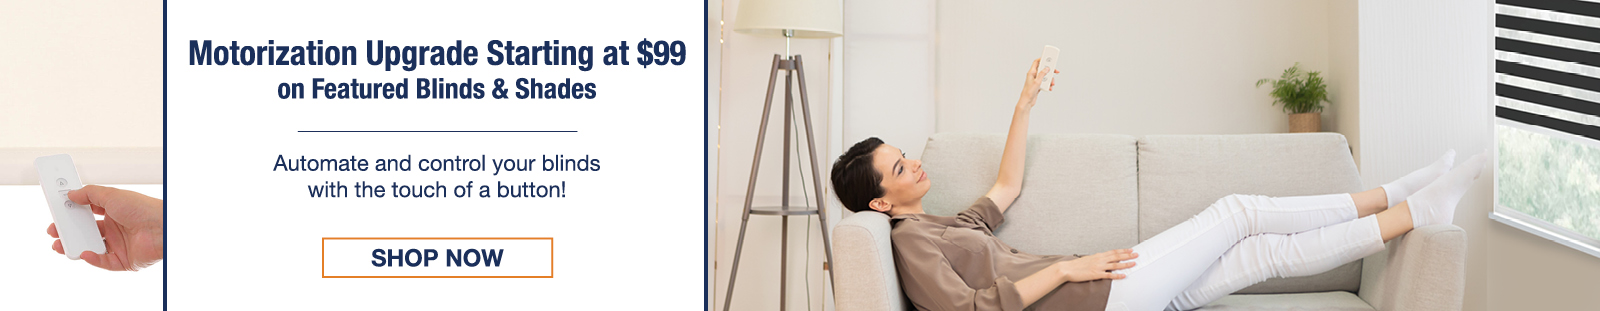 Motorization starting at $99 on featured blinds and shades